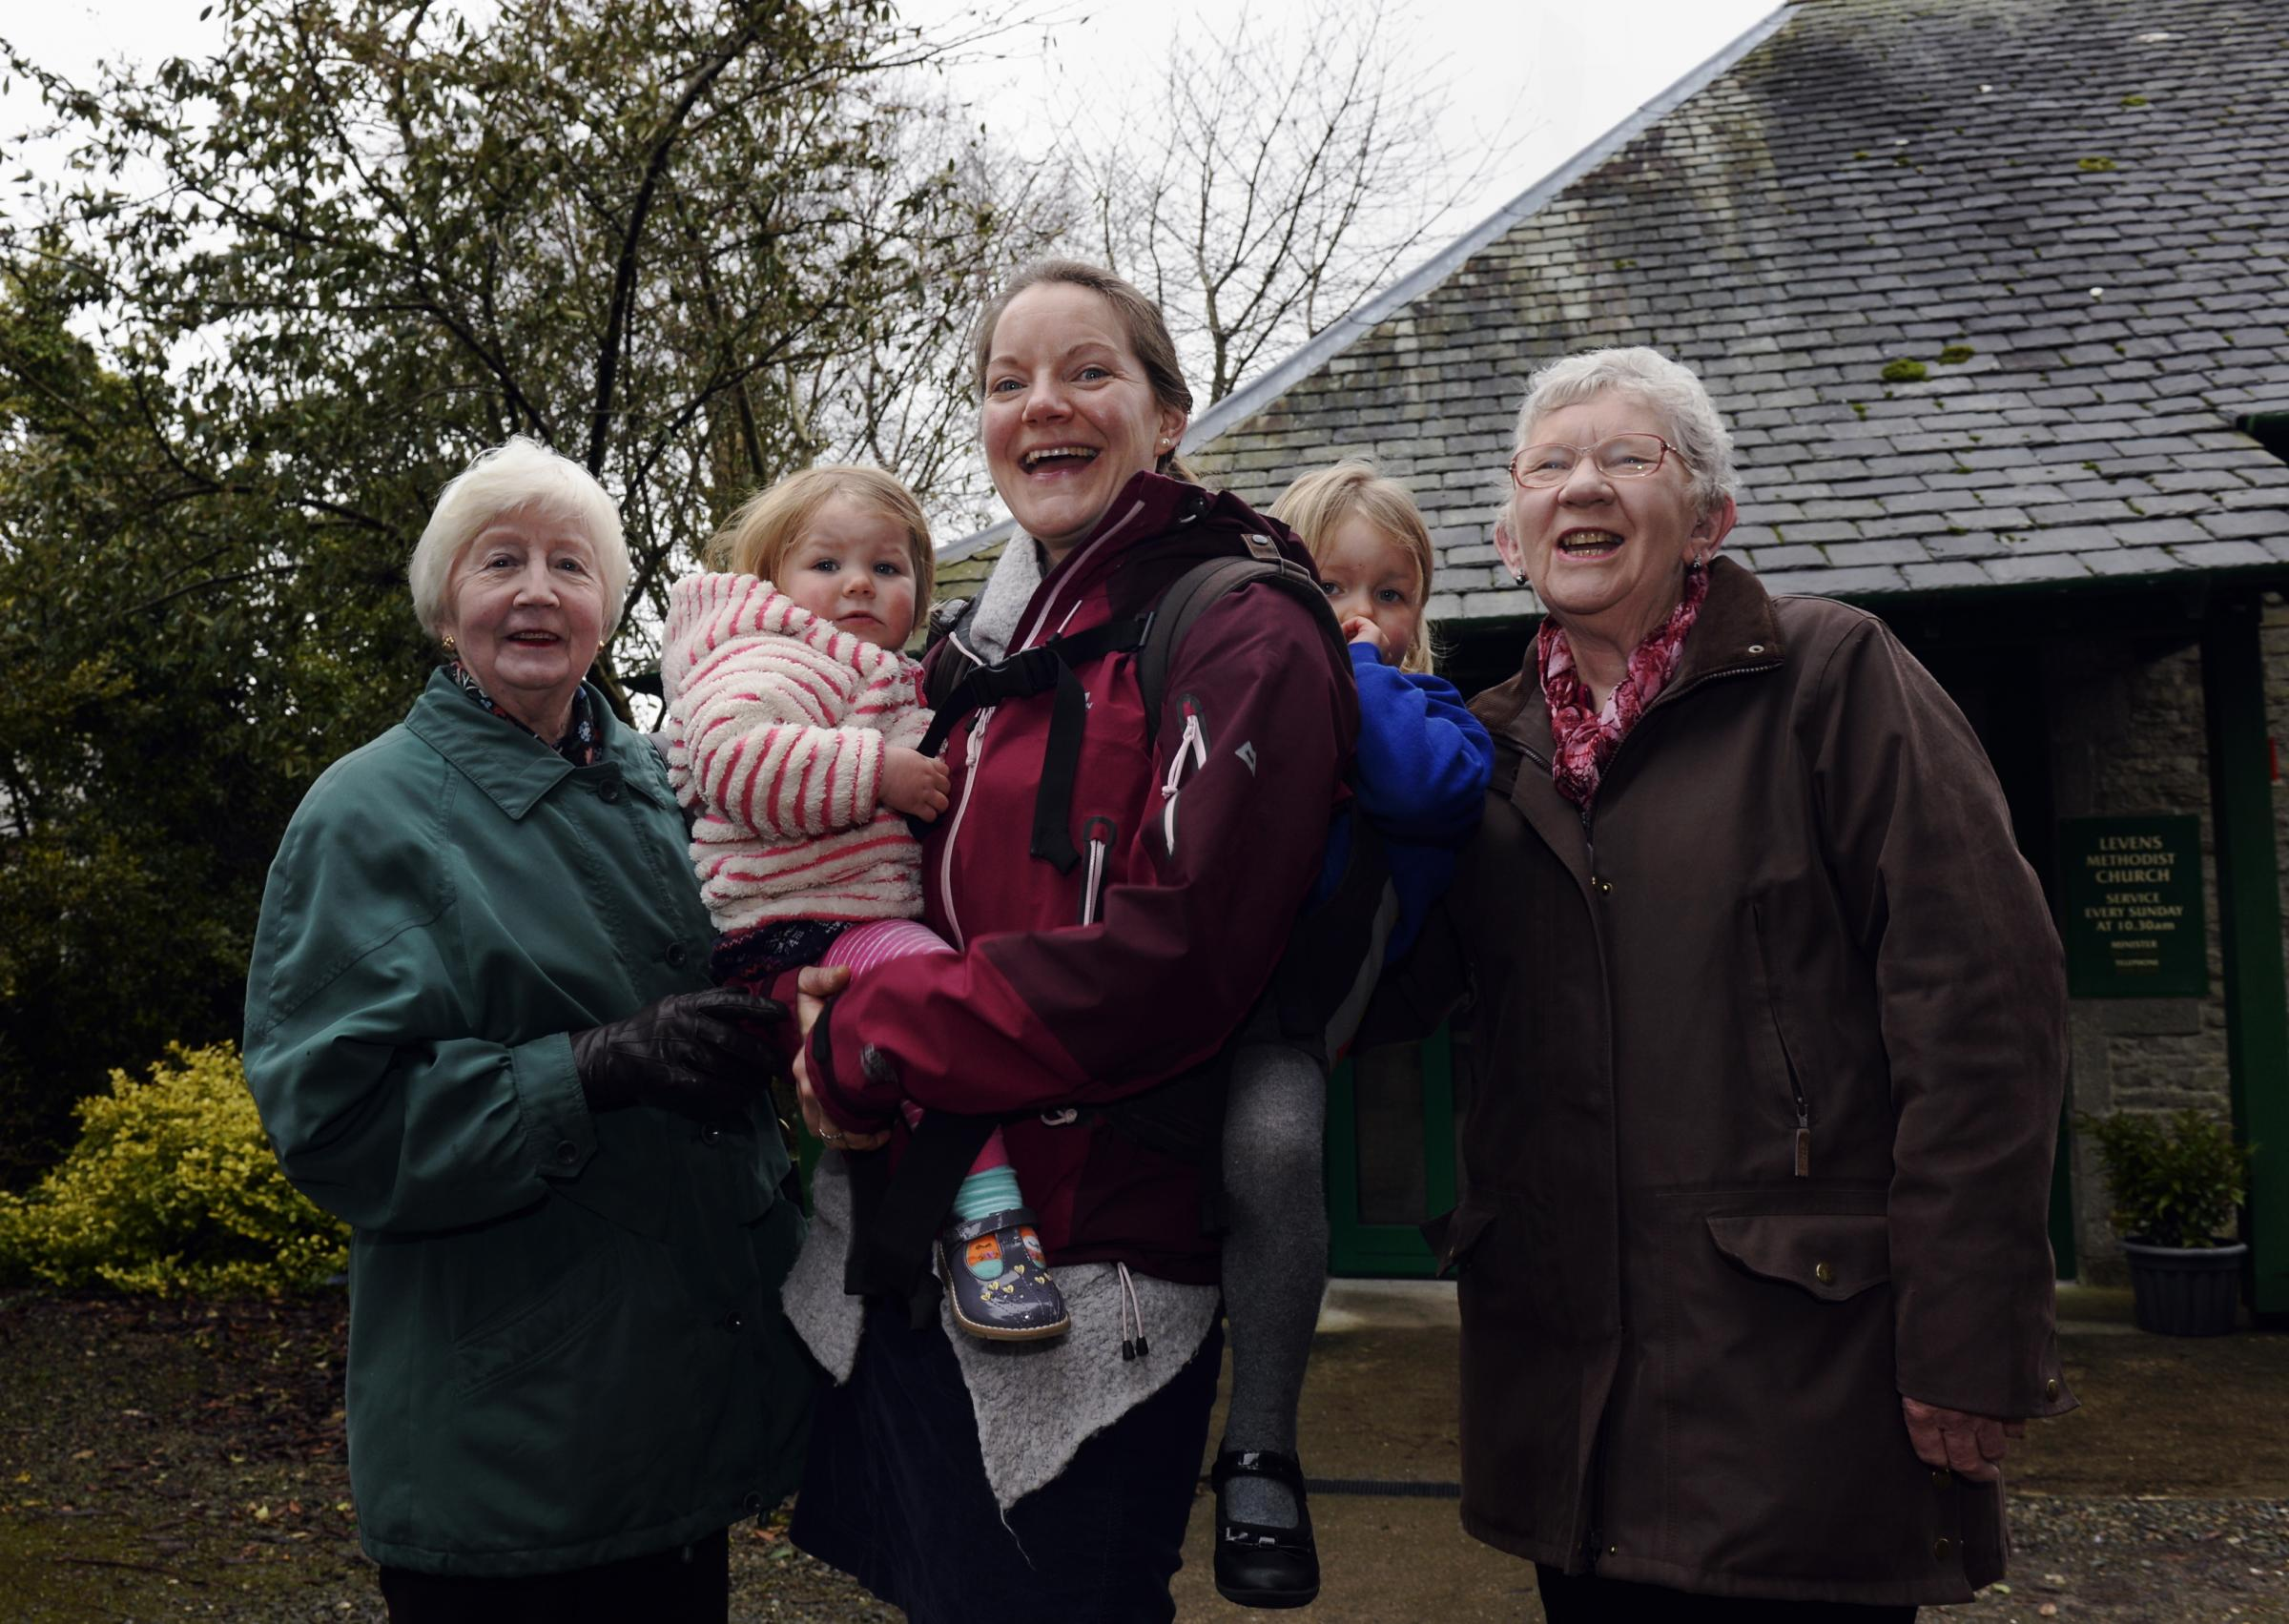 PEOPLE MATTER: Irene McKay of Levens who is organising a care in the community group is pictured (right), with fellow villagersTricia Binns and Jen Harris with her children Anna and grace.06/03/2018JON GRANGER